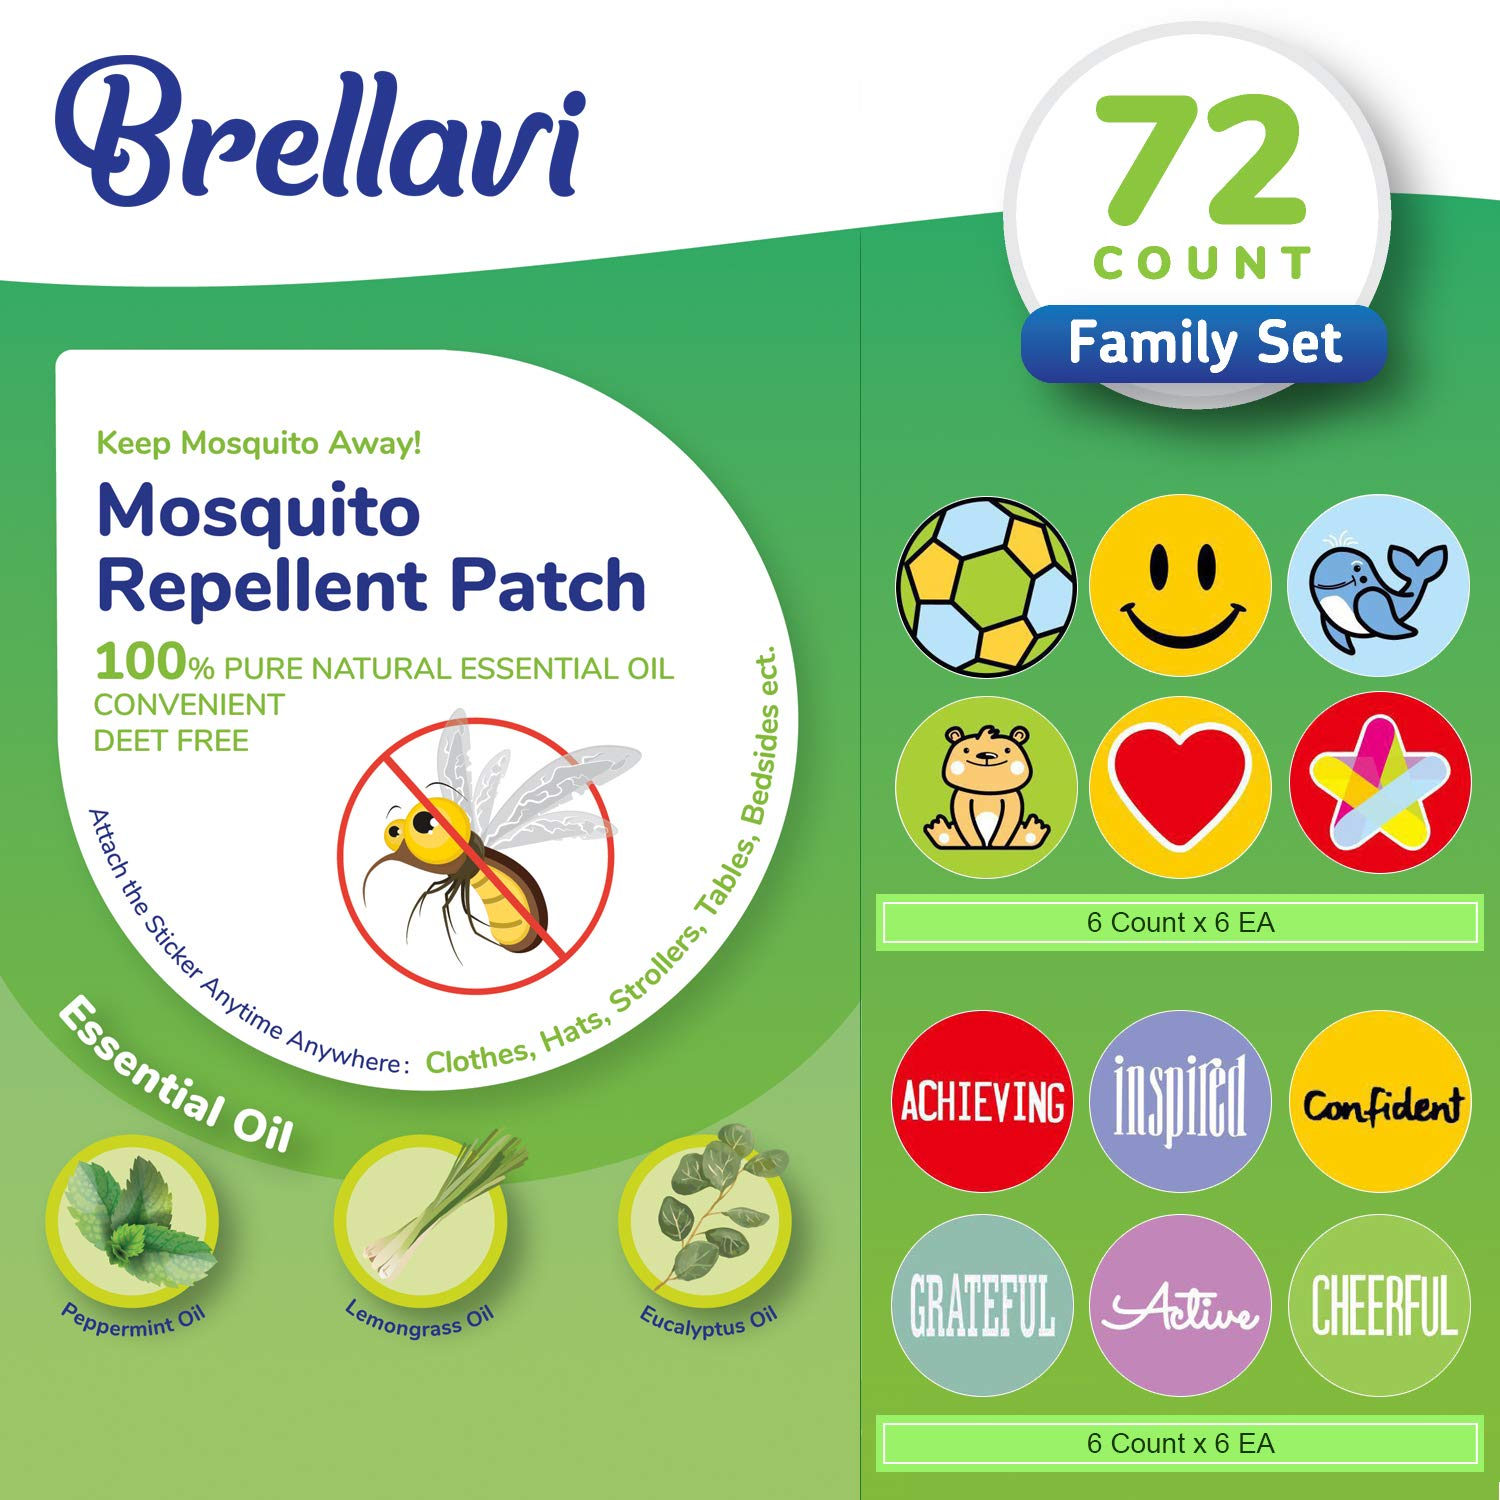 72 Count Mosquito Repellent Patches, Deet-Free Mosquito Repellent Patches, Natural Essential Oil Mosquito Repellent Stickers, Best Mosquito Repellent Patches for Family by Brellavi